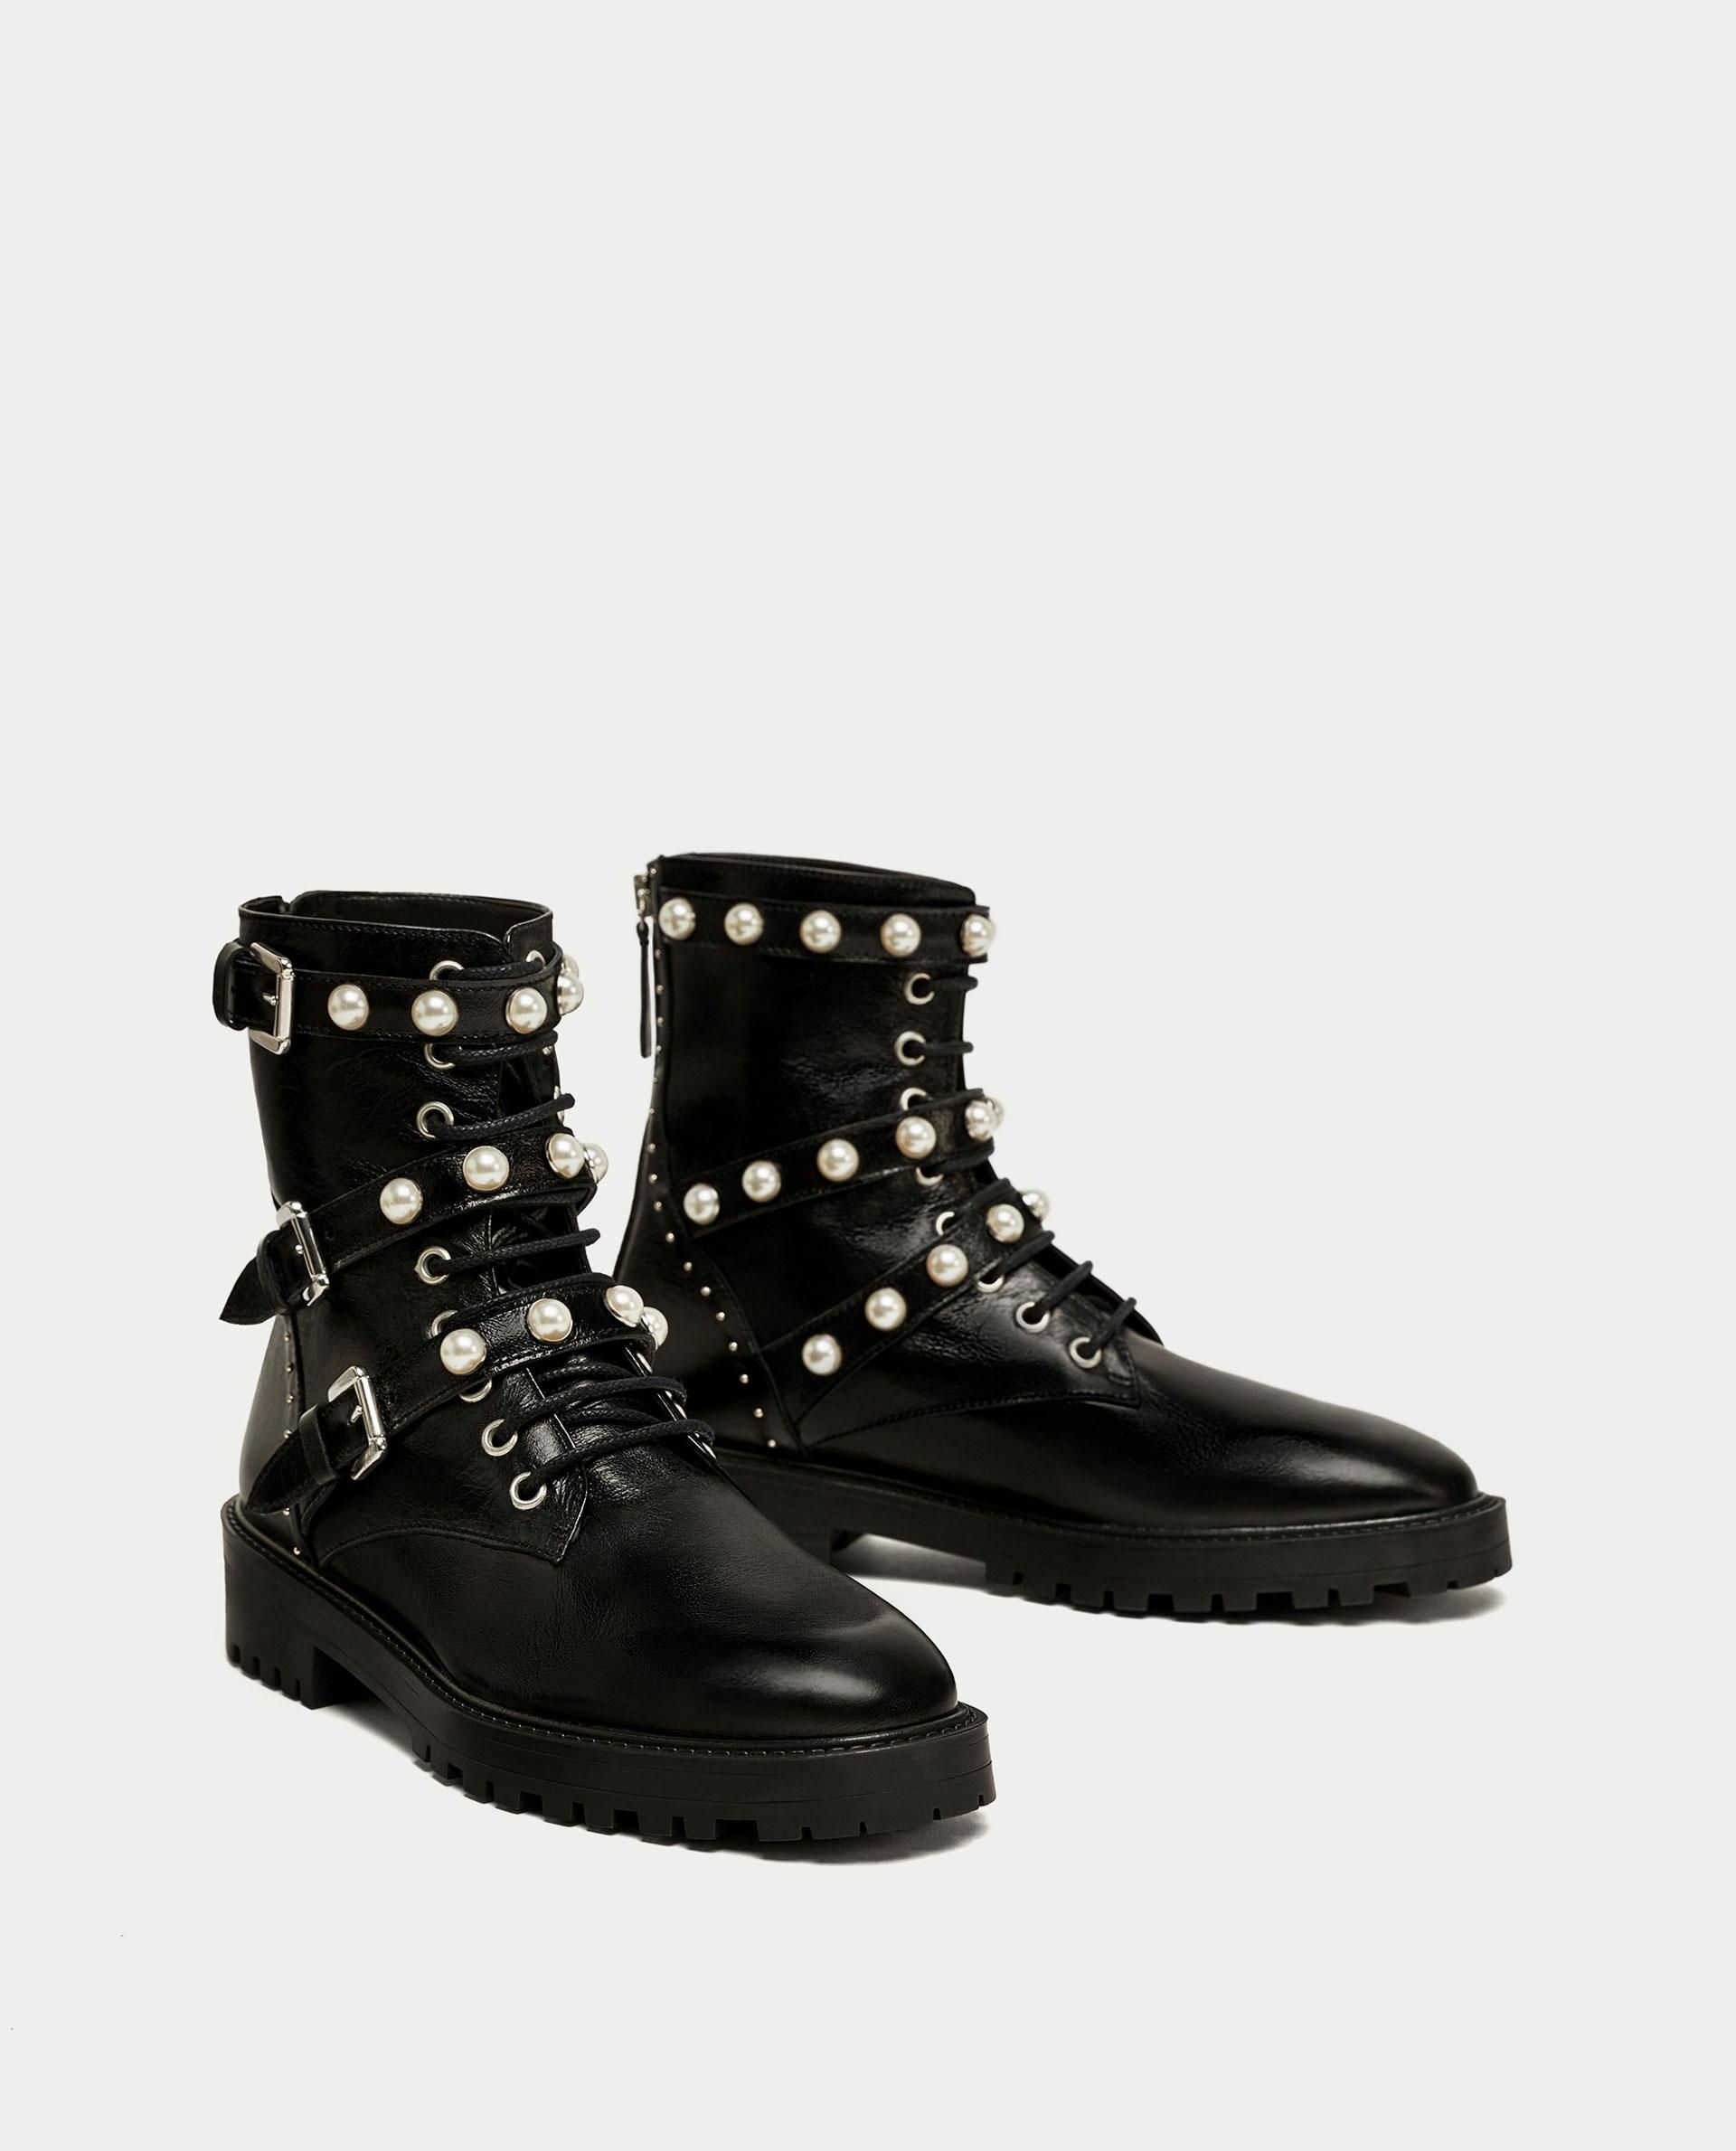 86d186d812 Leather Ankle Boots With Faux Pearls // 119.00 USD // Zara // Black ...